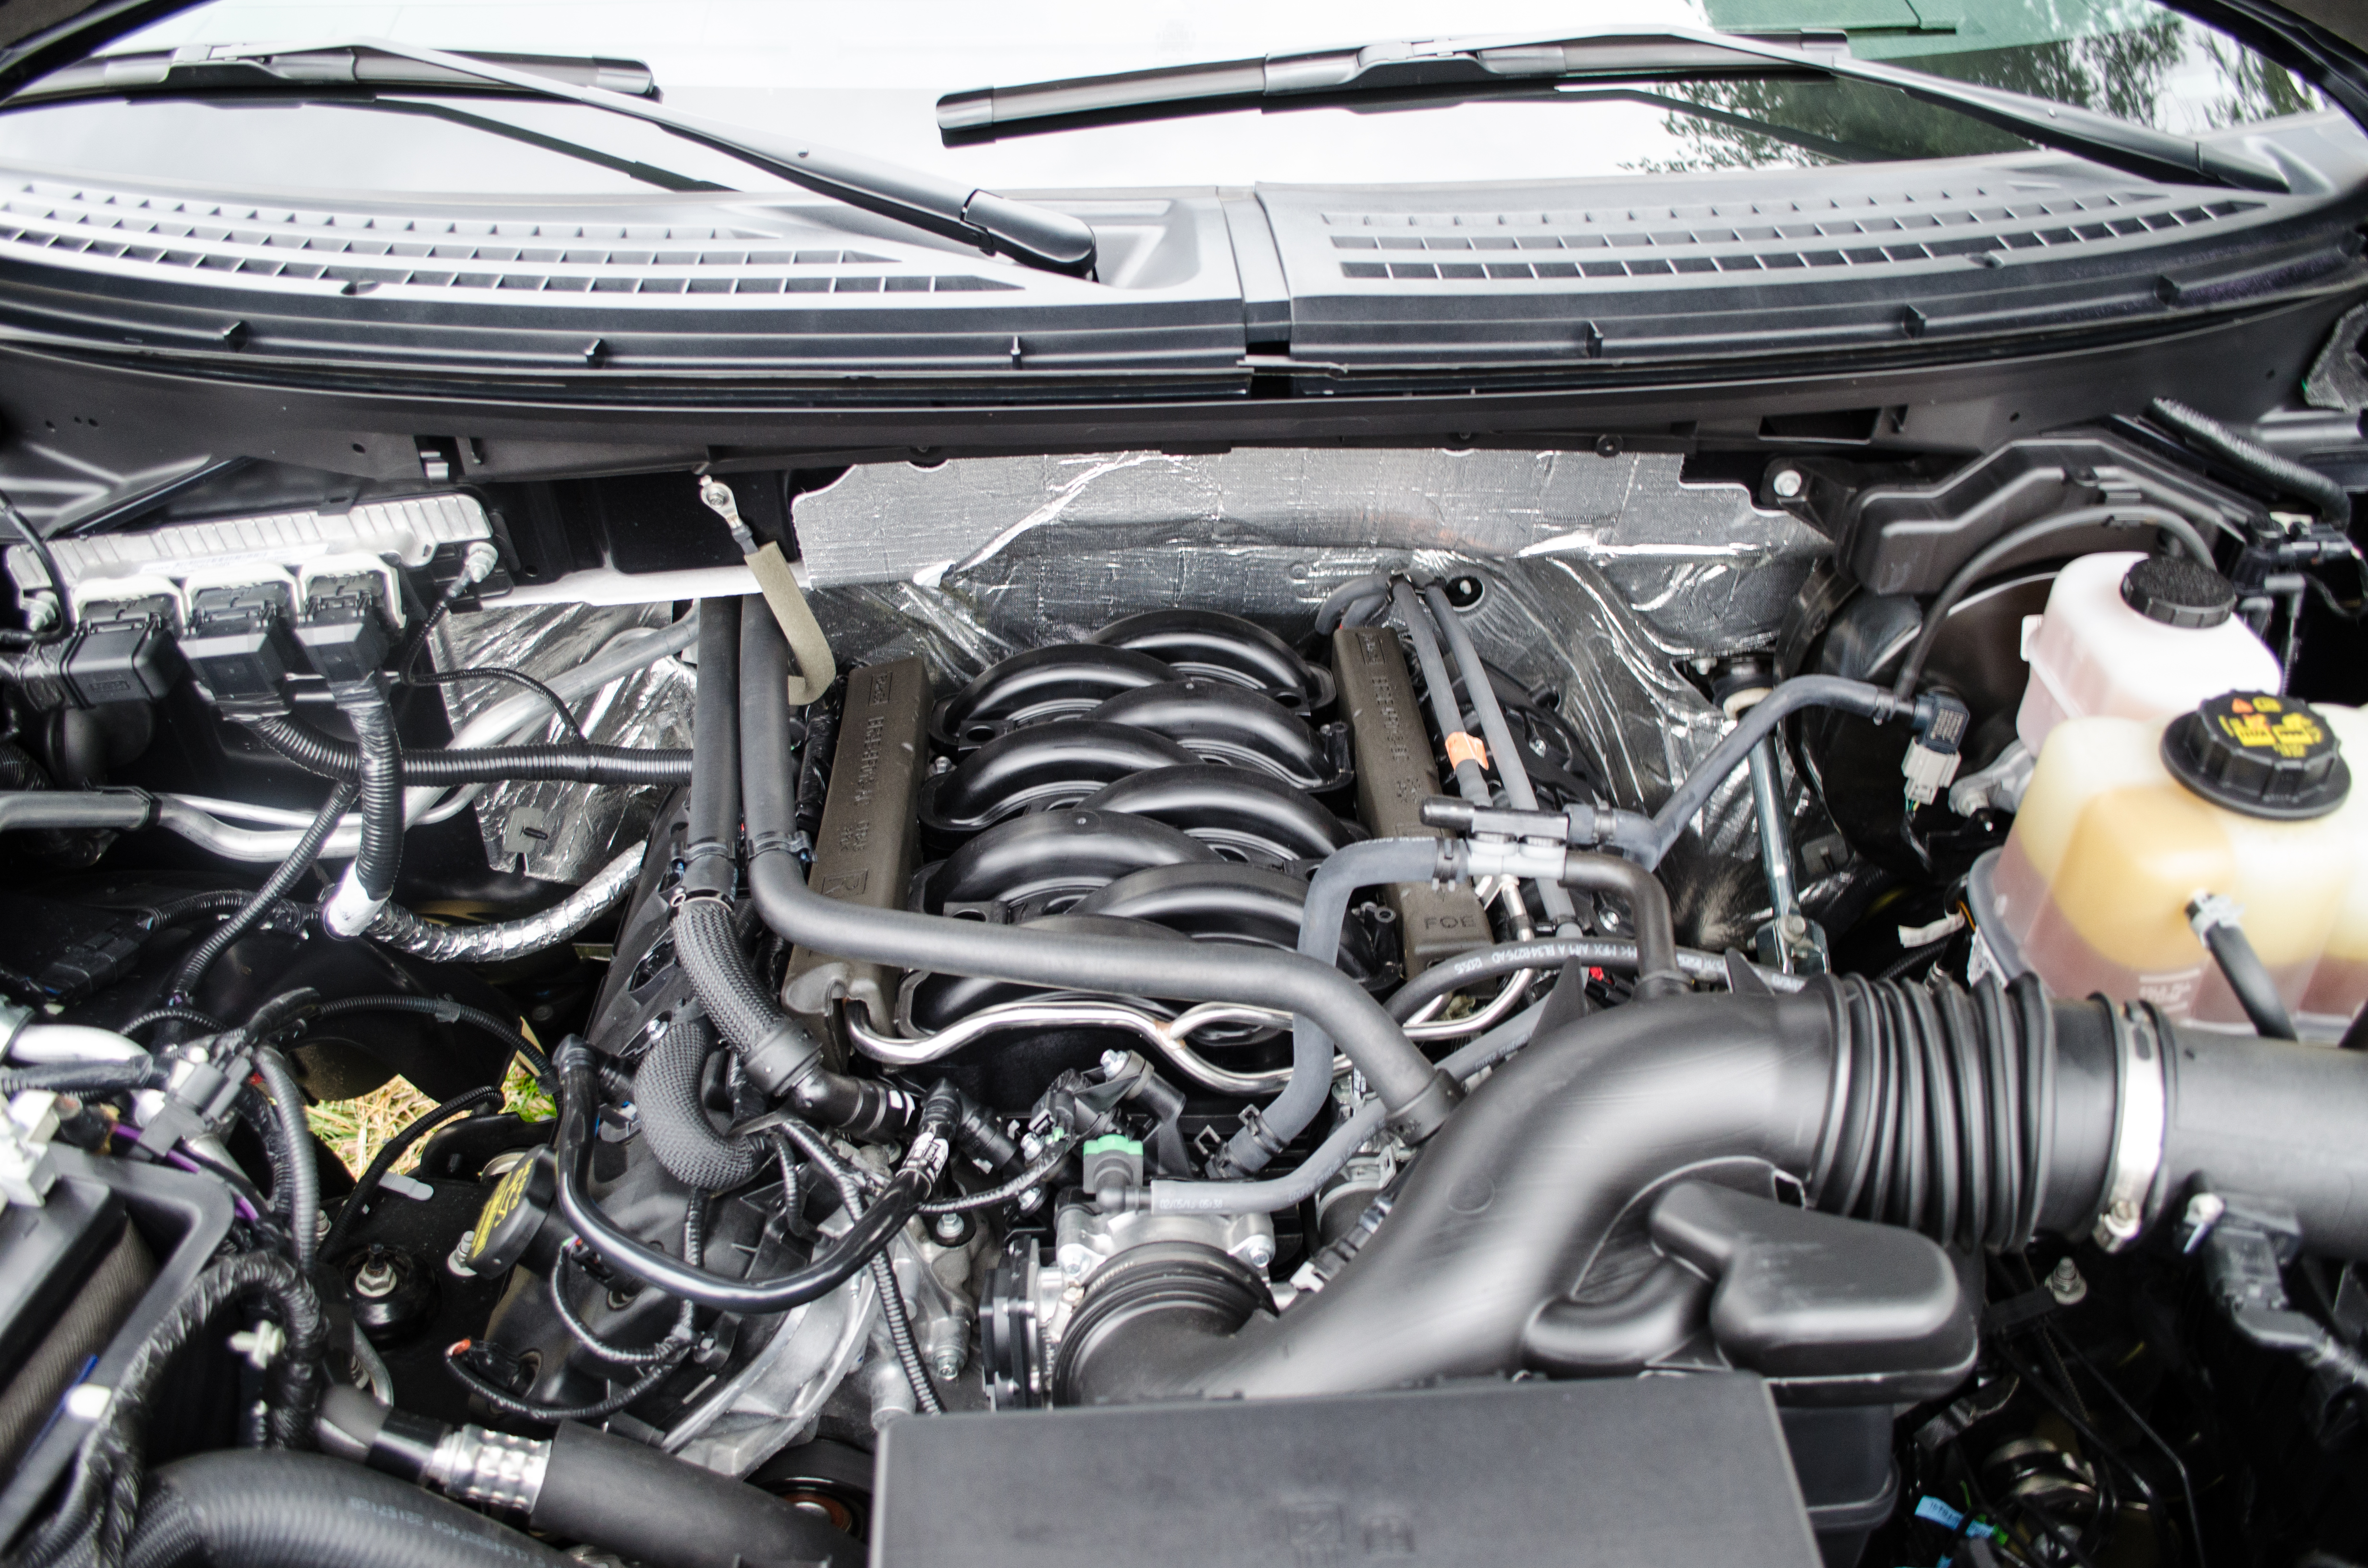 2014 Ford F 150 Xlt 18 Of 37 Motor Review 2012 Jeep Wrangler Engine Diagram